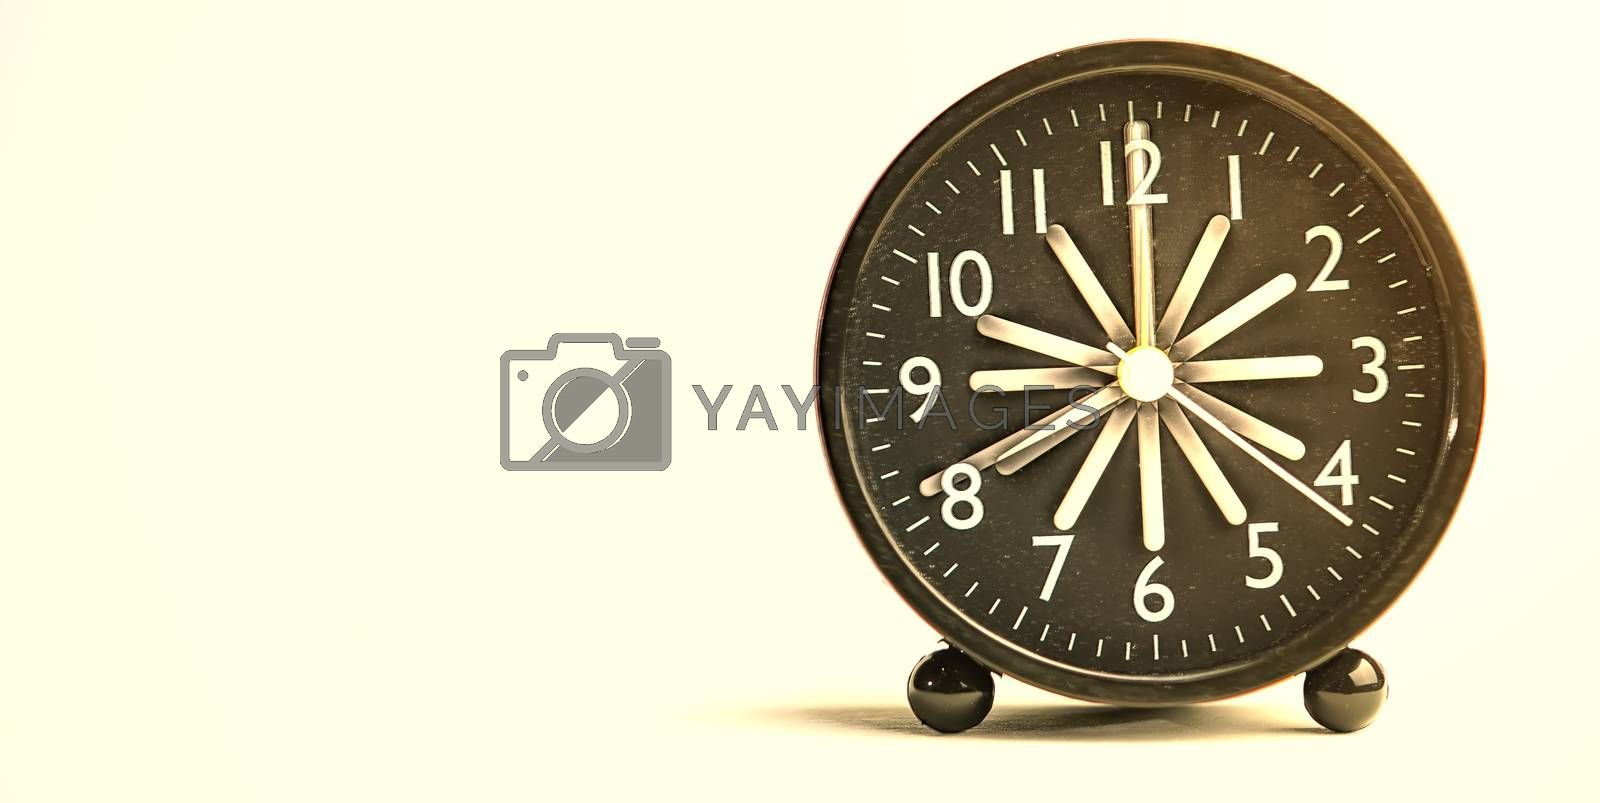 Abstract Close-up Black Analog Alarm Clock for Decoration Isolated White Background with Copy Space Radius Blur.